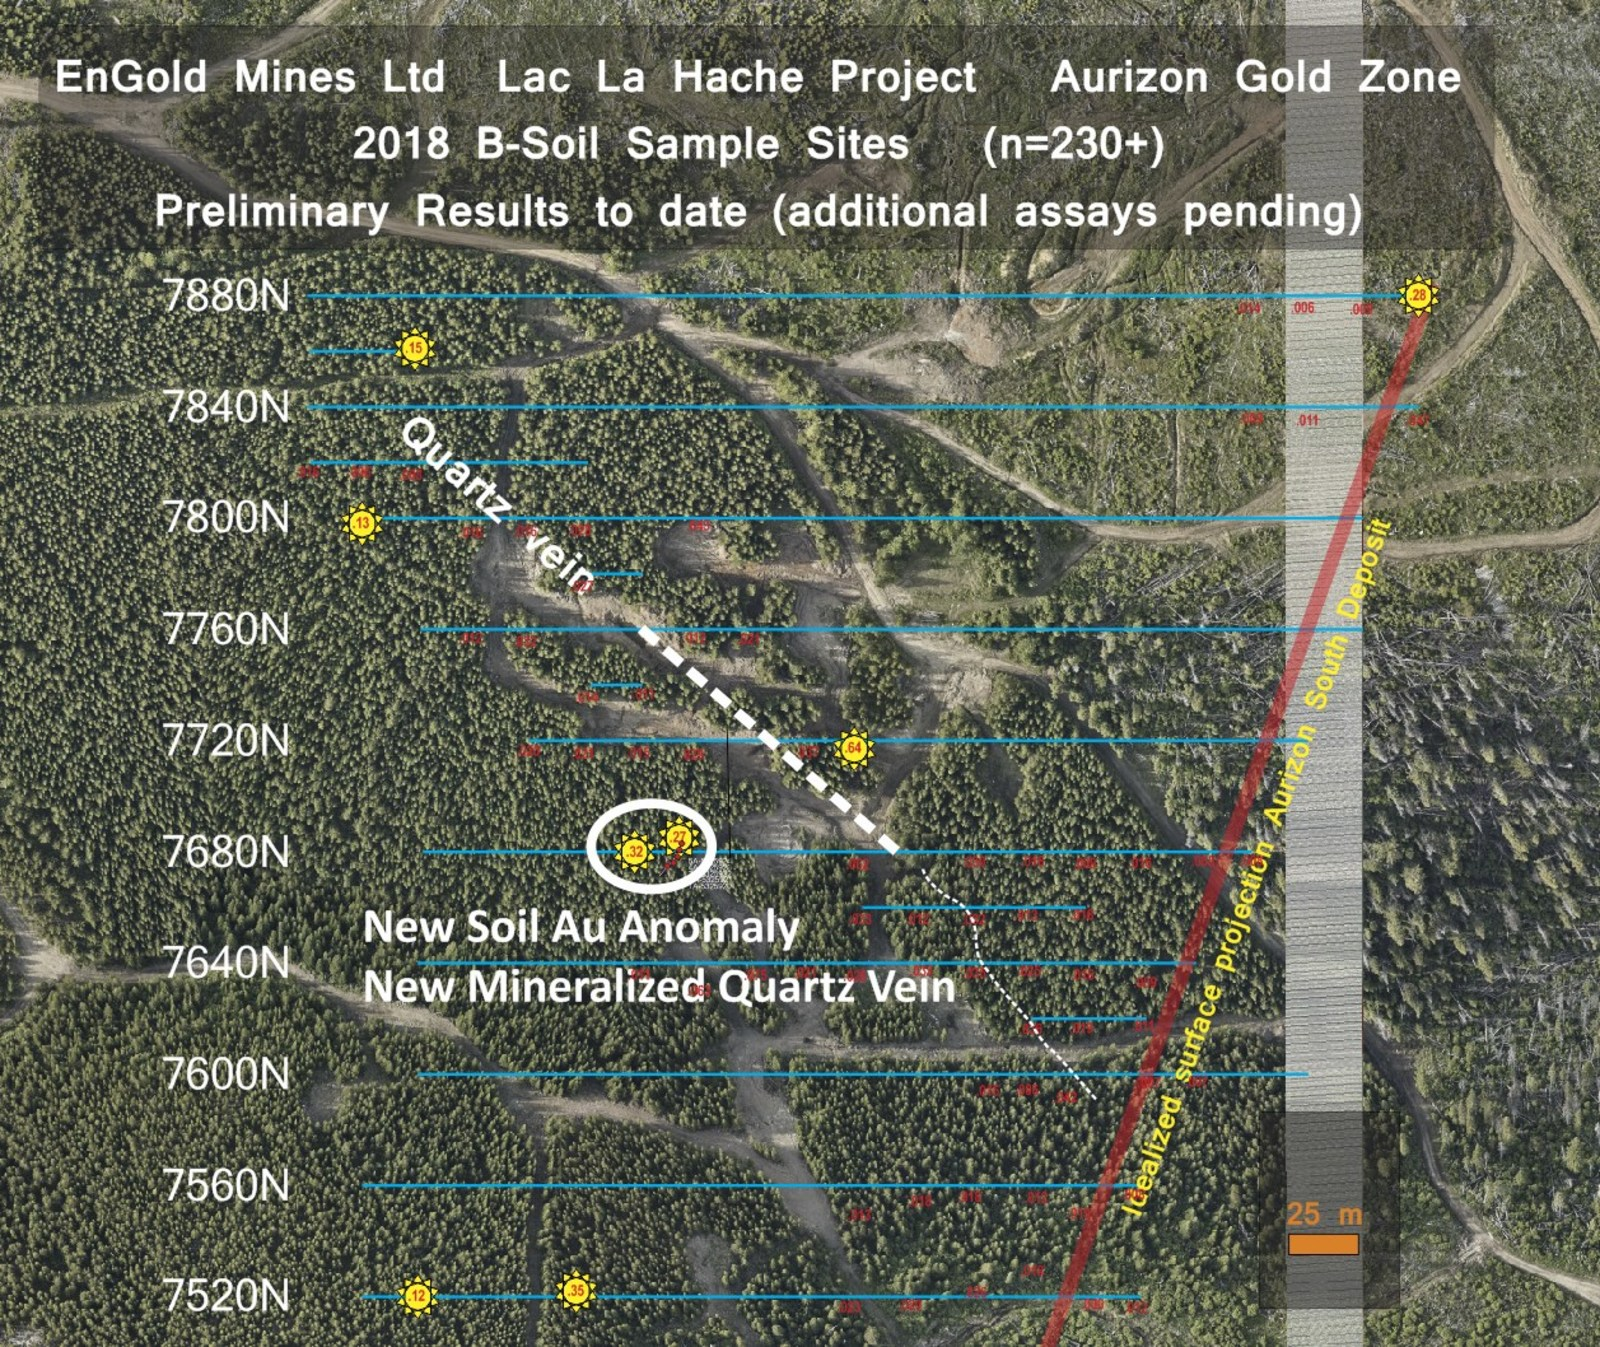 EnGold Mines Discovers New Mineralized Zone Near Aurizon Gold Assays